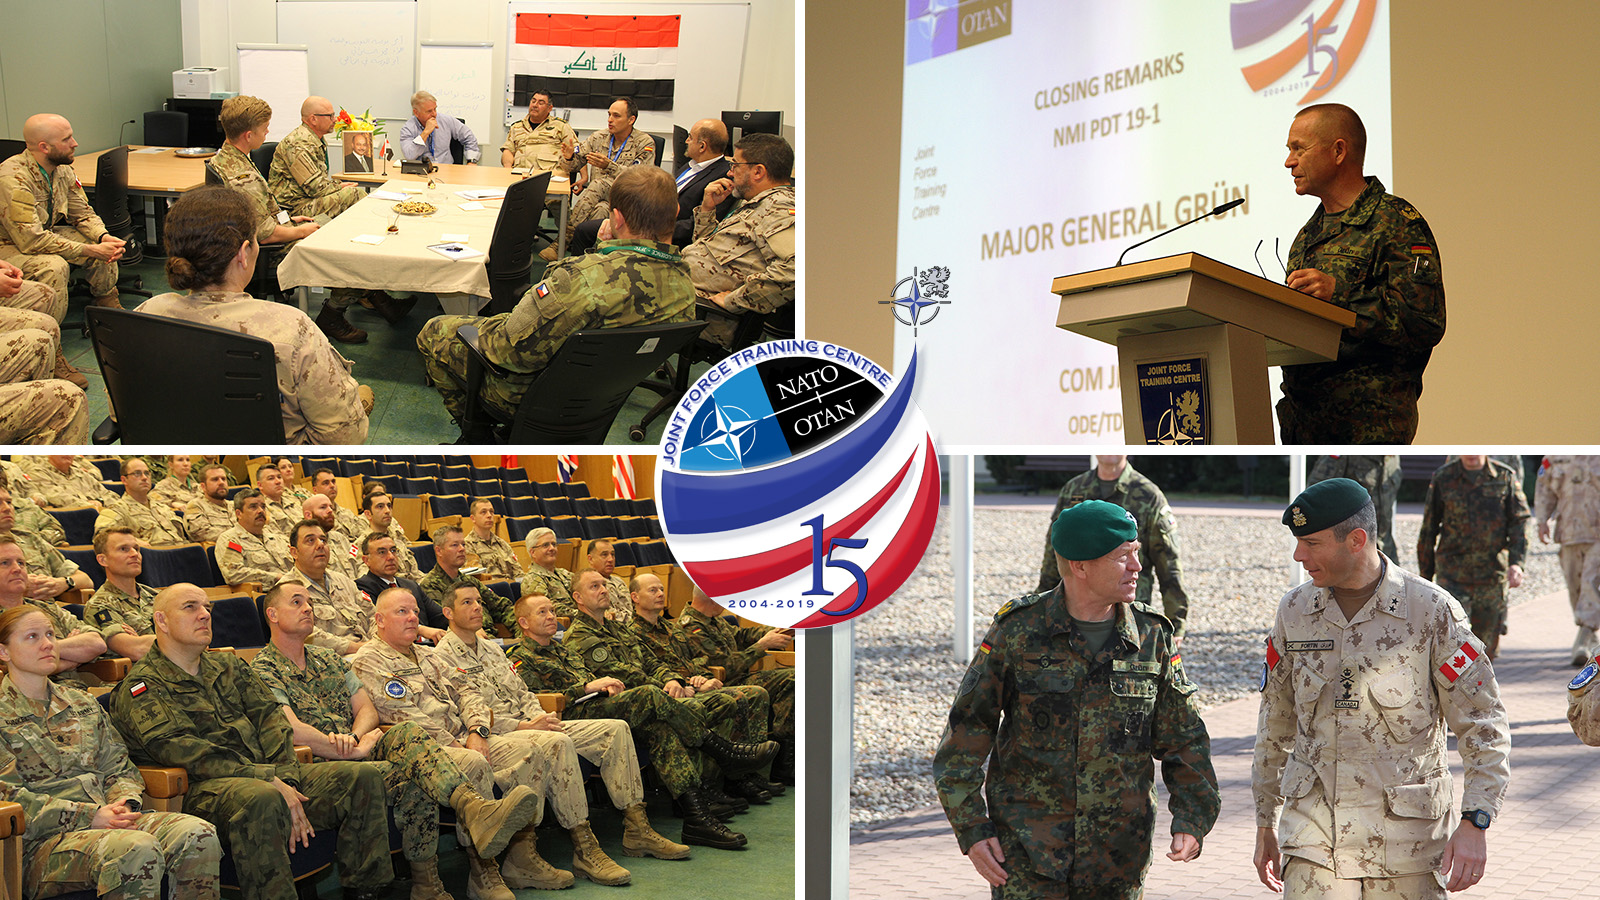 Pre-Deployment Training for NATO Mission Iraq. New task for JFTC